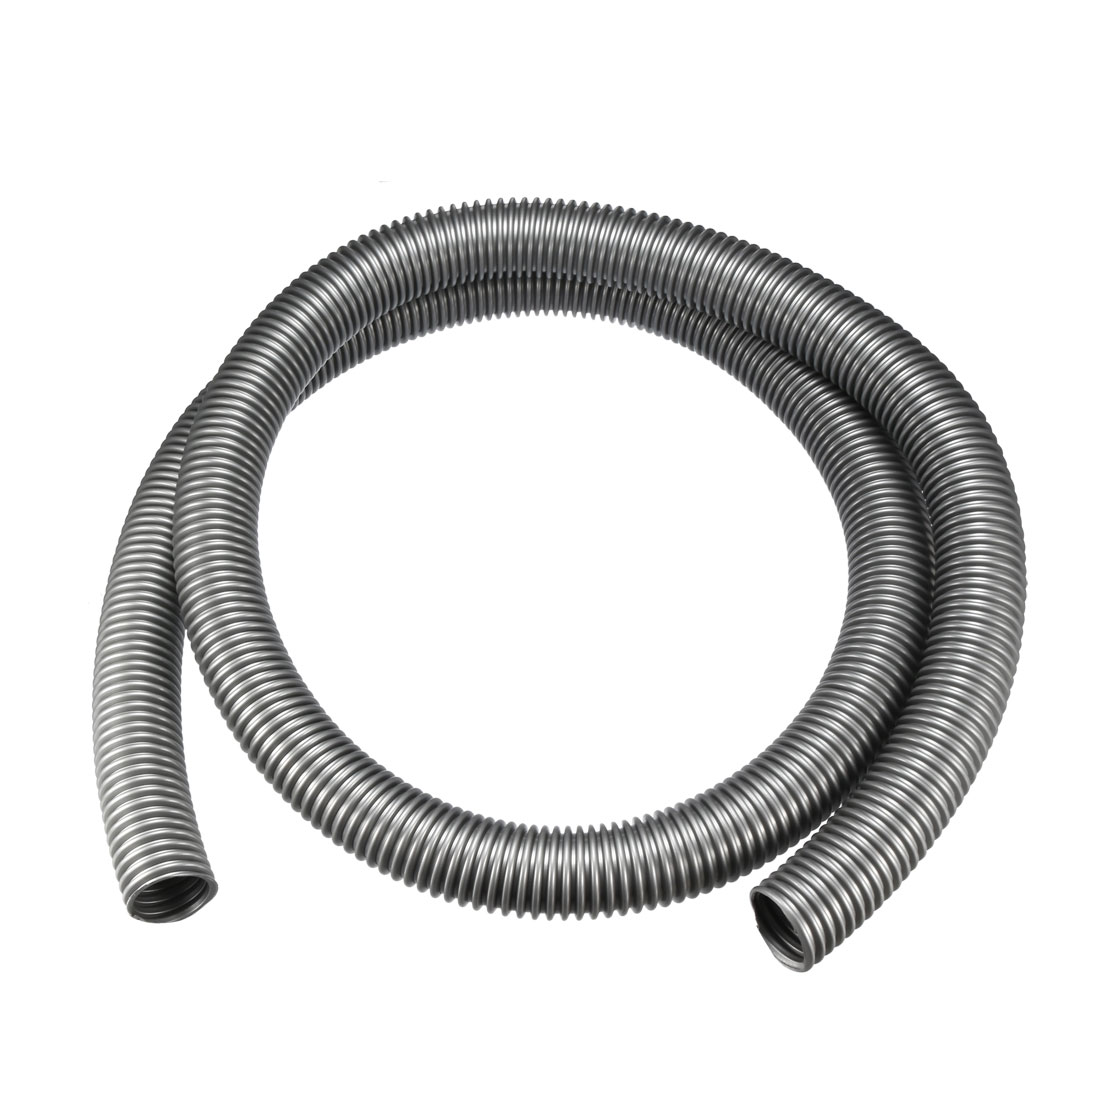 32mm 2M EVA Flexible Tube Central Vacuum Cleaner Hose Accessory Extension Gray